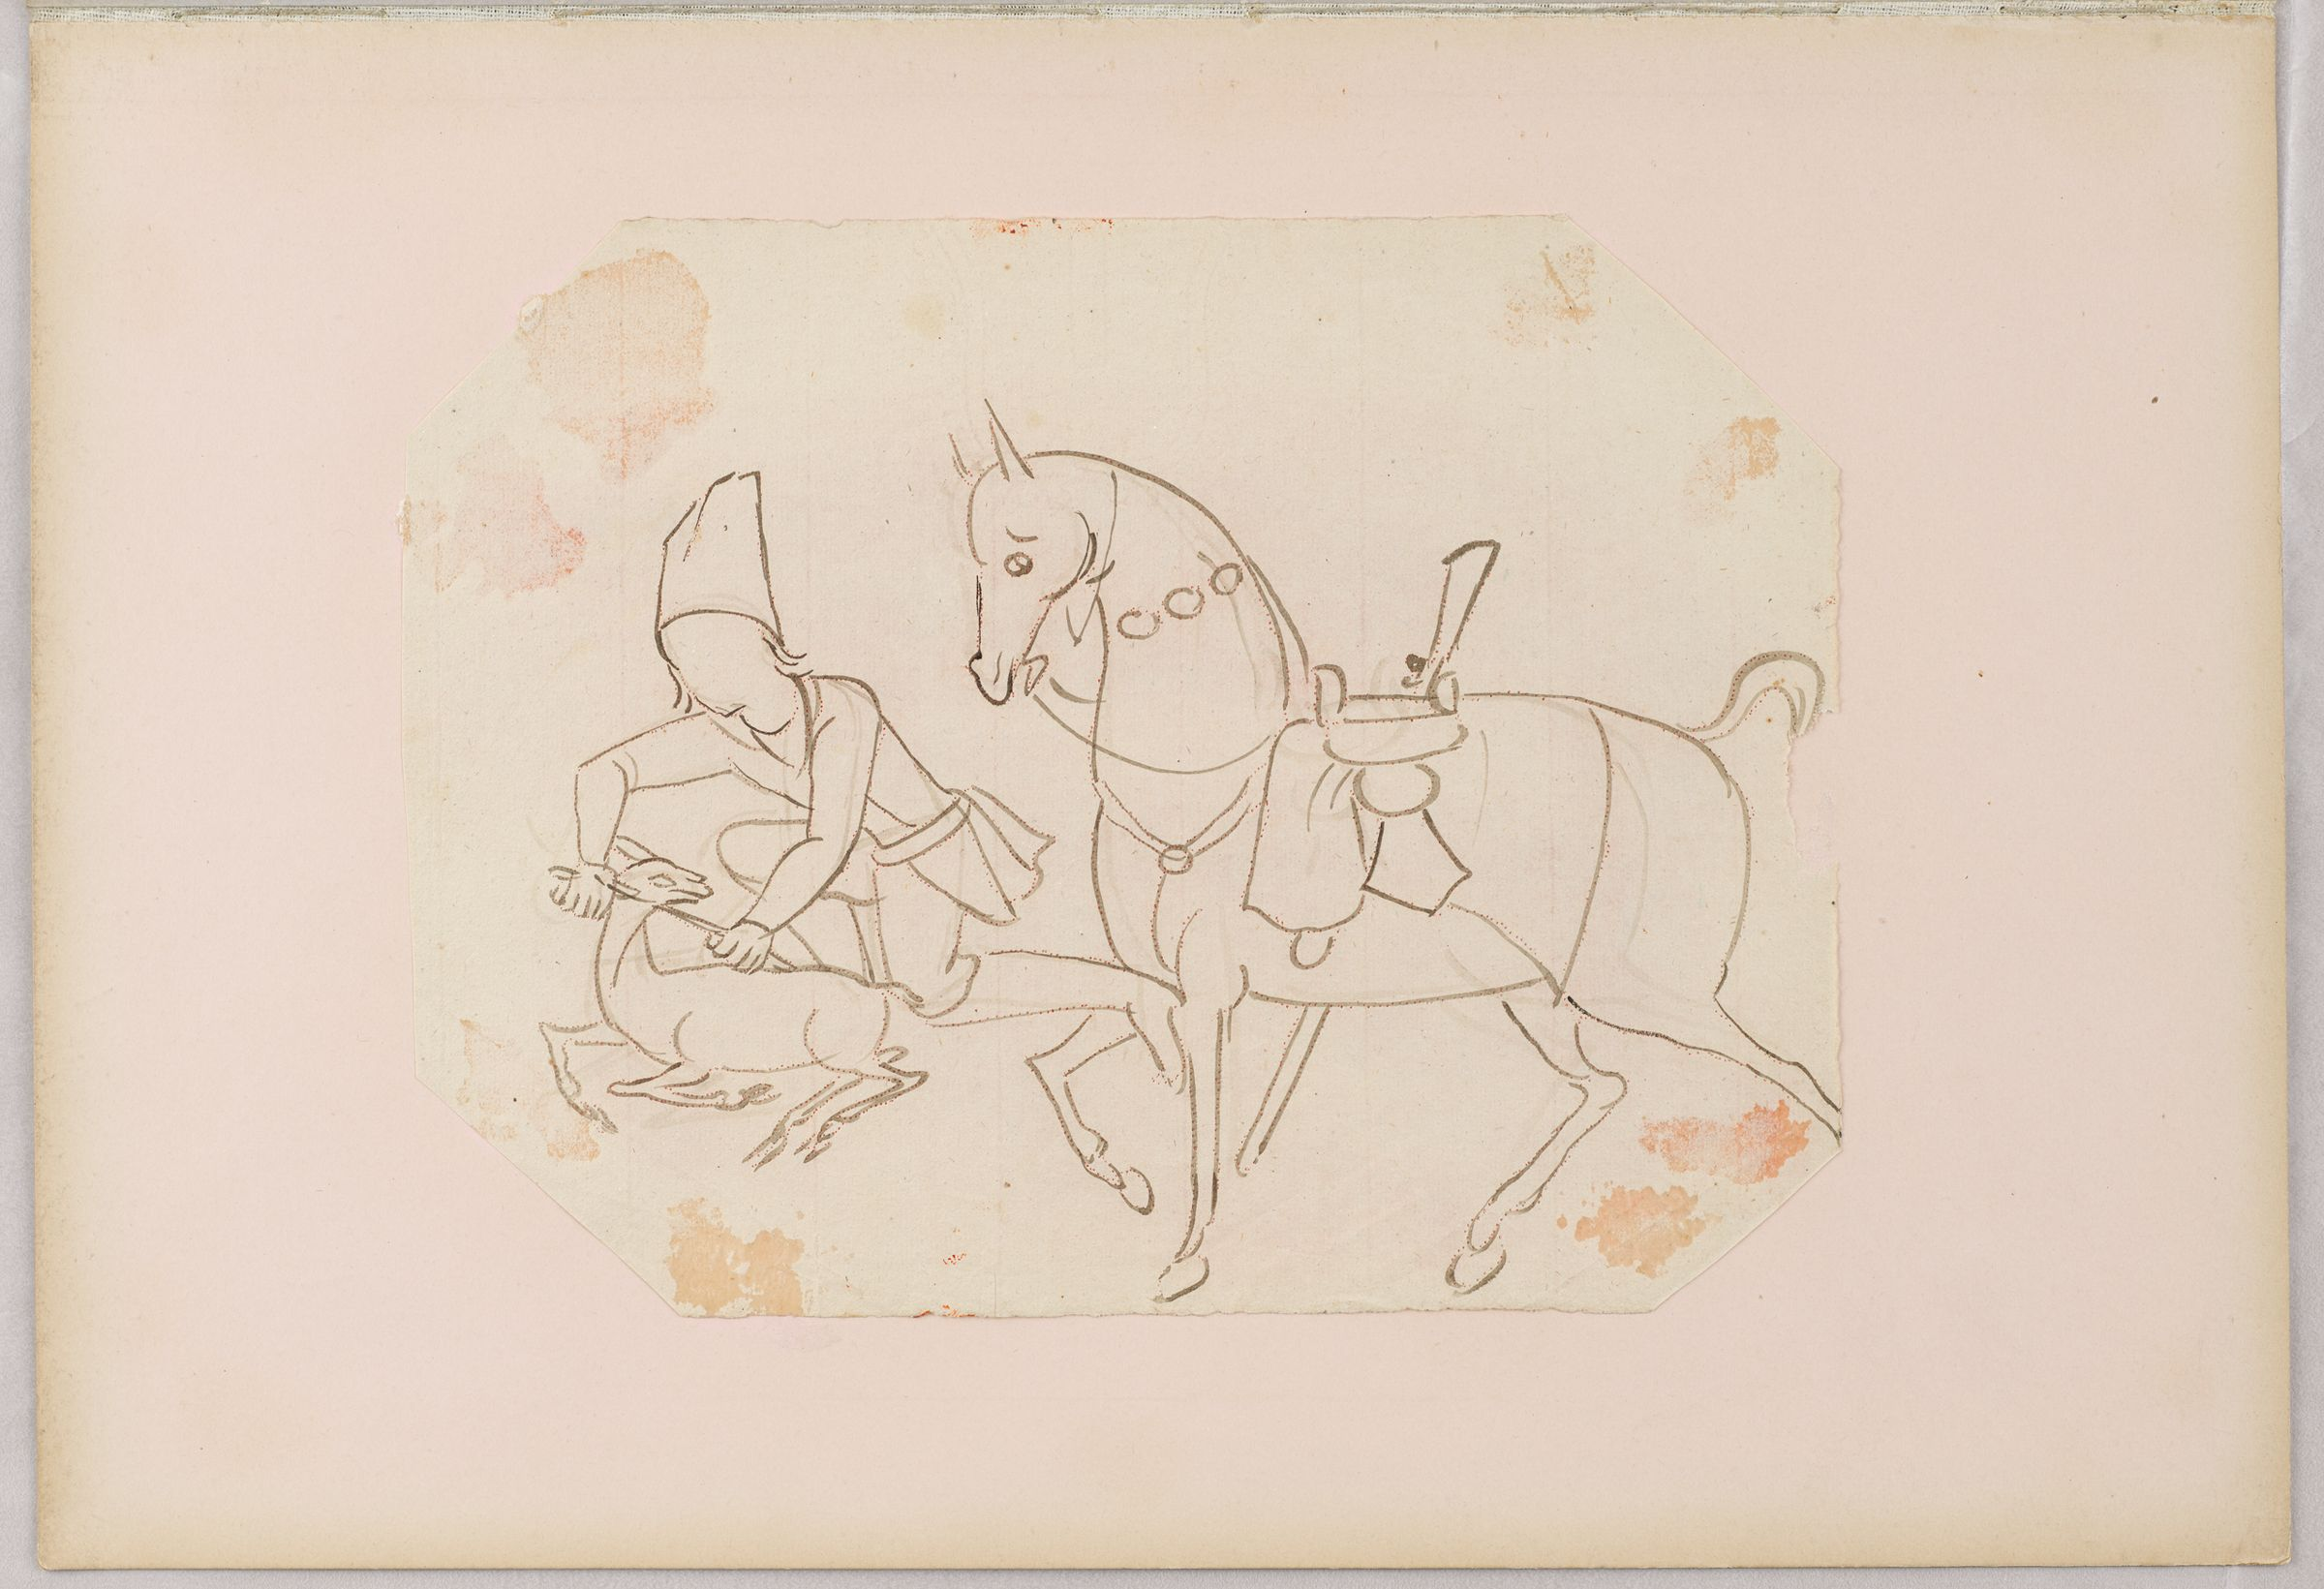 Folio 12 From An Album Of Drawings And Paintings: Hunter Dismounted From Horse, Killing A Deer (Recto); Blank Page (Verso)